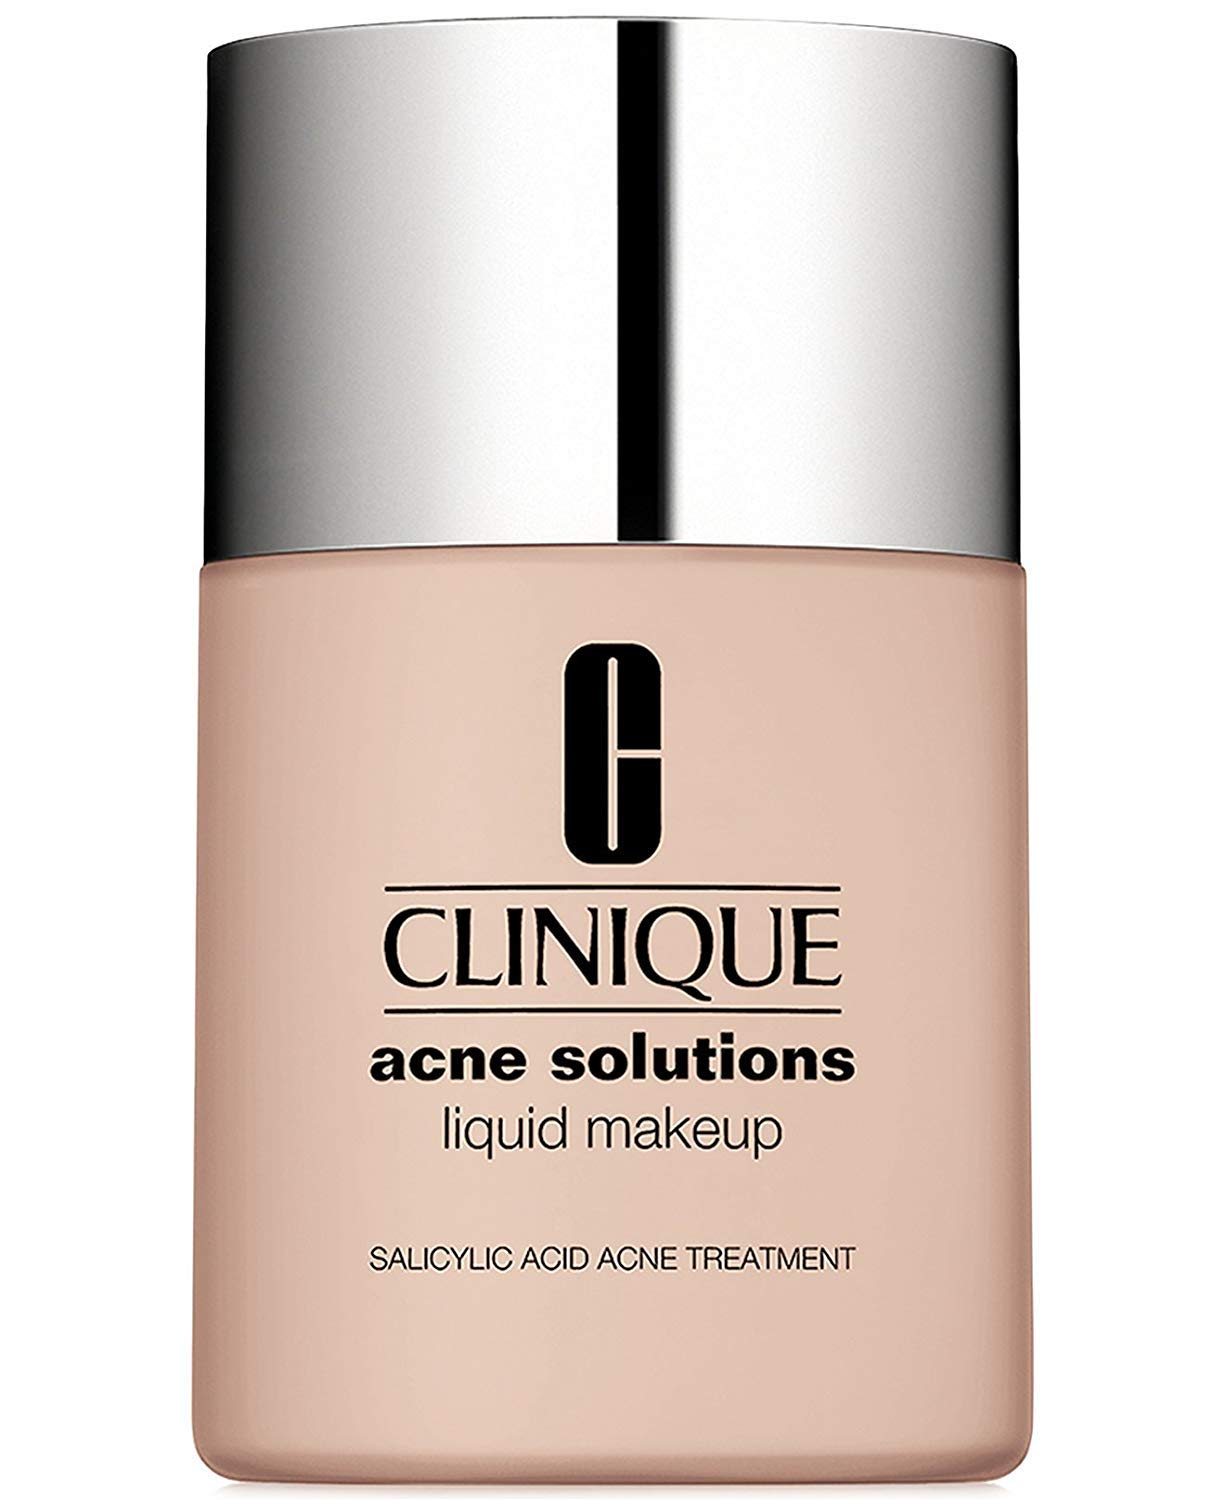 New! Clinique Acne Solutions Liquid Makeup, 1 oz / 30 ml, 14 Fresh Fair (VF-P)